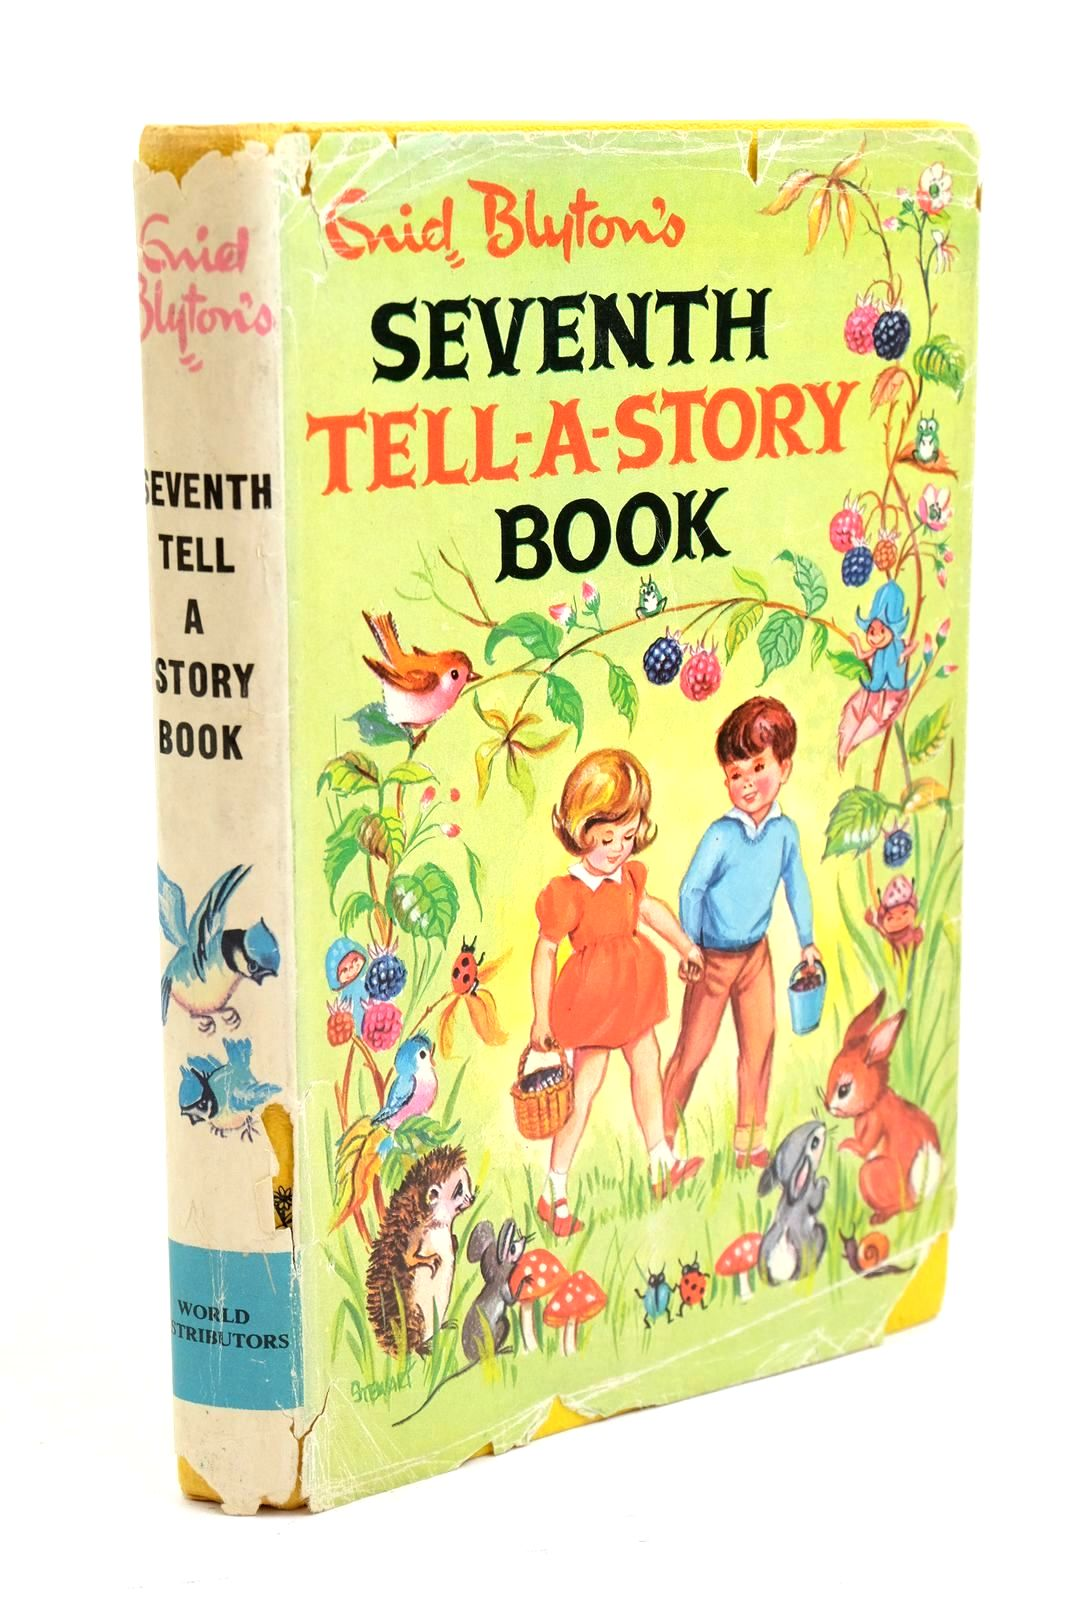 Photo of ENID BLYTON'S SEVENTH TELL-A-STORY BOOK written by Blyton, Enid published by World Distributors Ltd. (STOCK CODE: 1321090)  for sale by Stella & Rose's Books